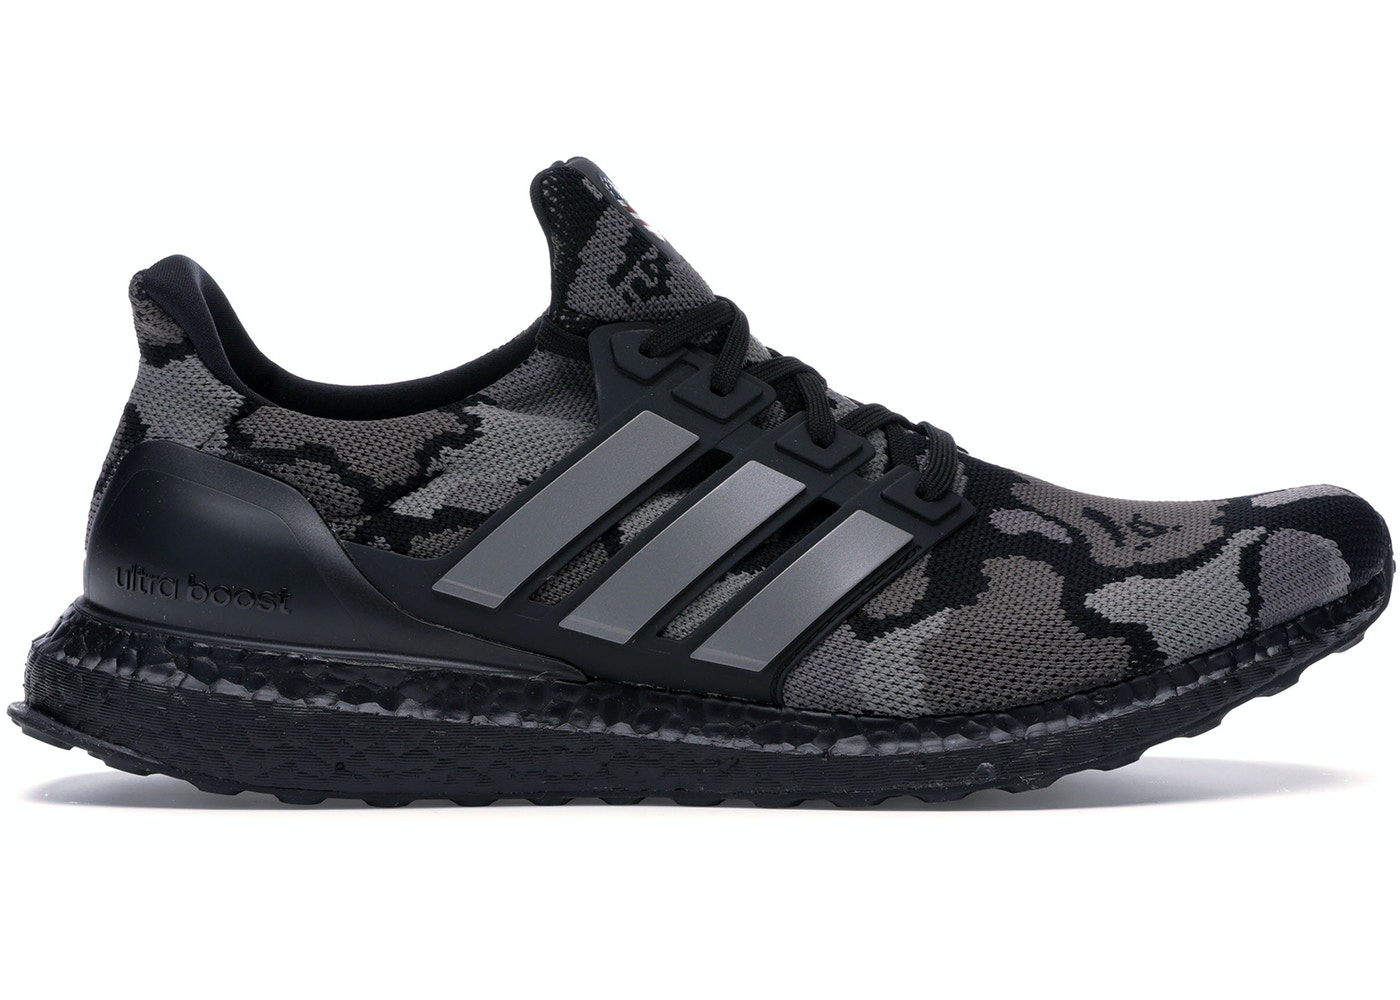 hot sale online fc656 fea6d adidas Ultra Boost 4.0 Bape Camo Black